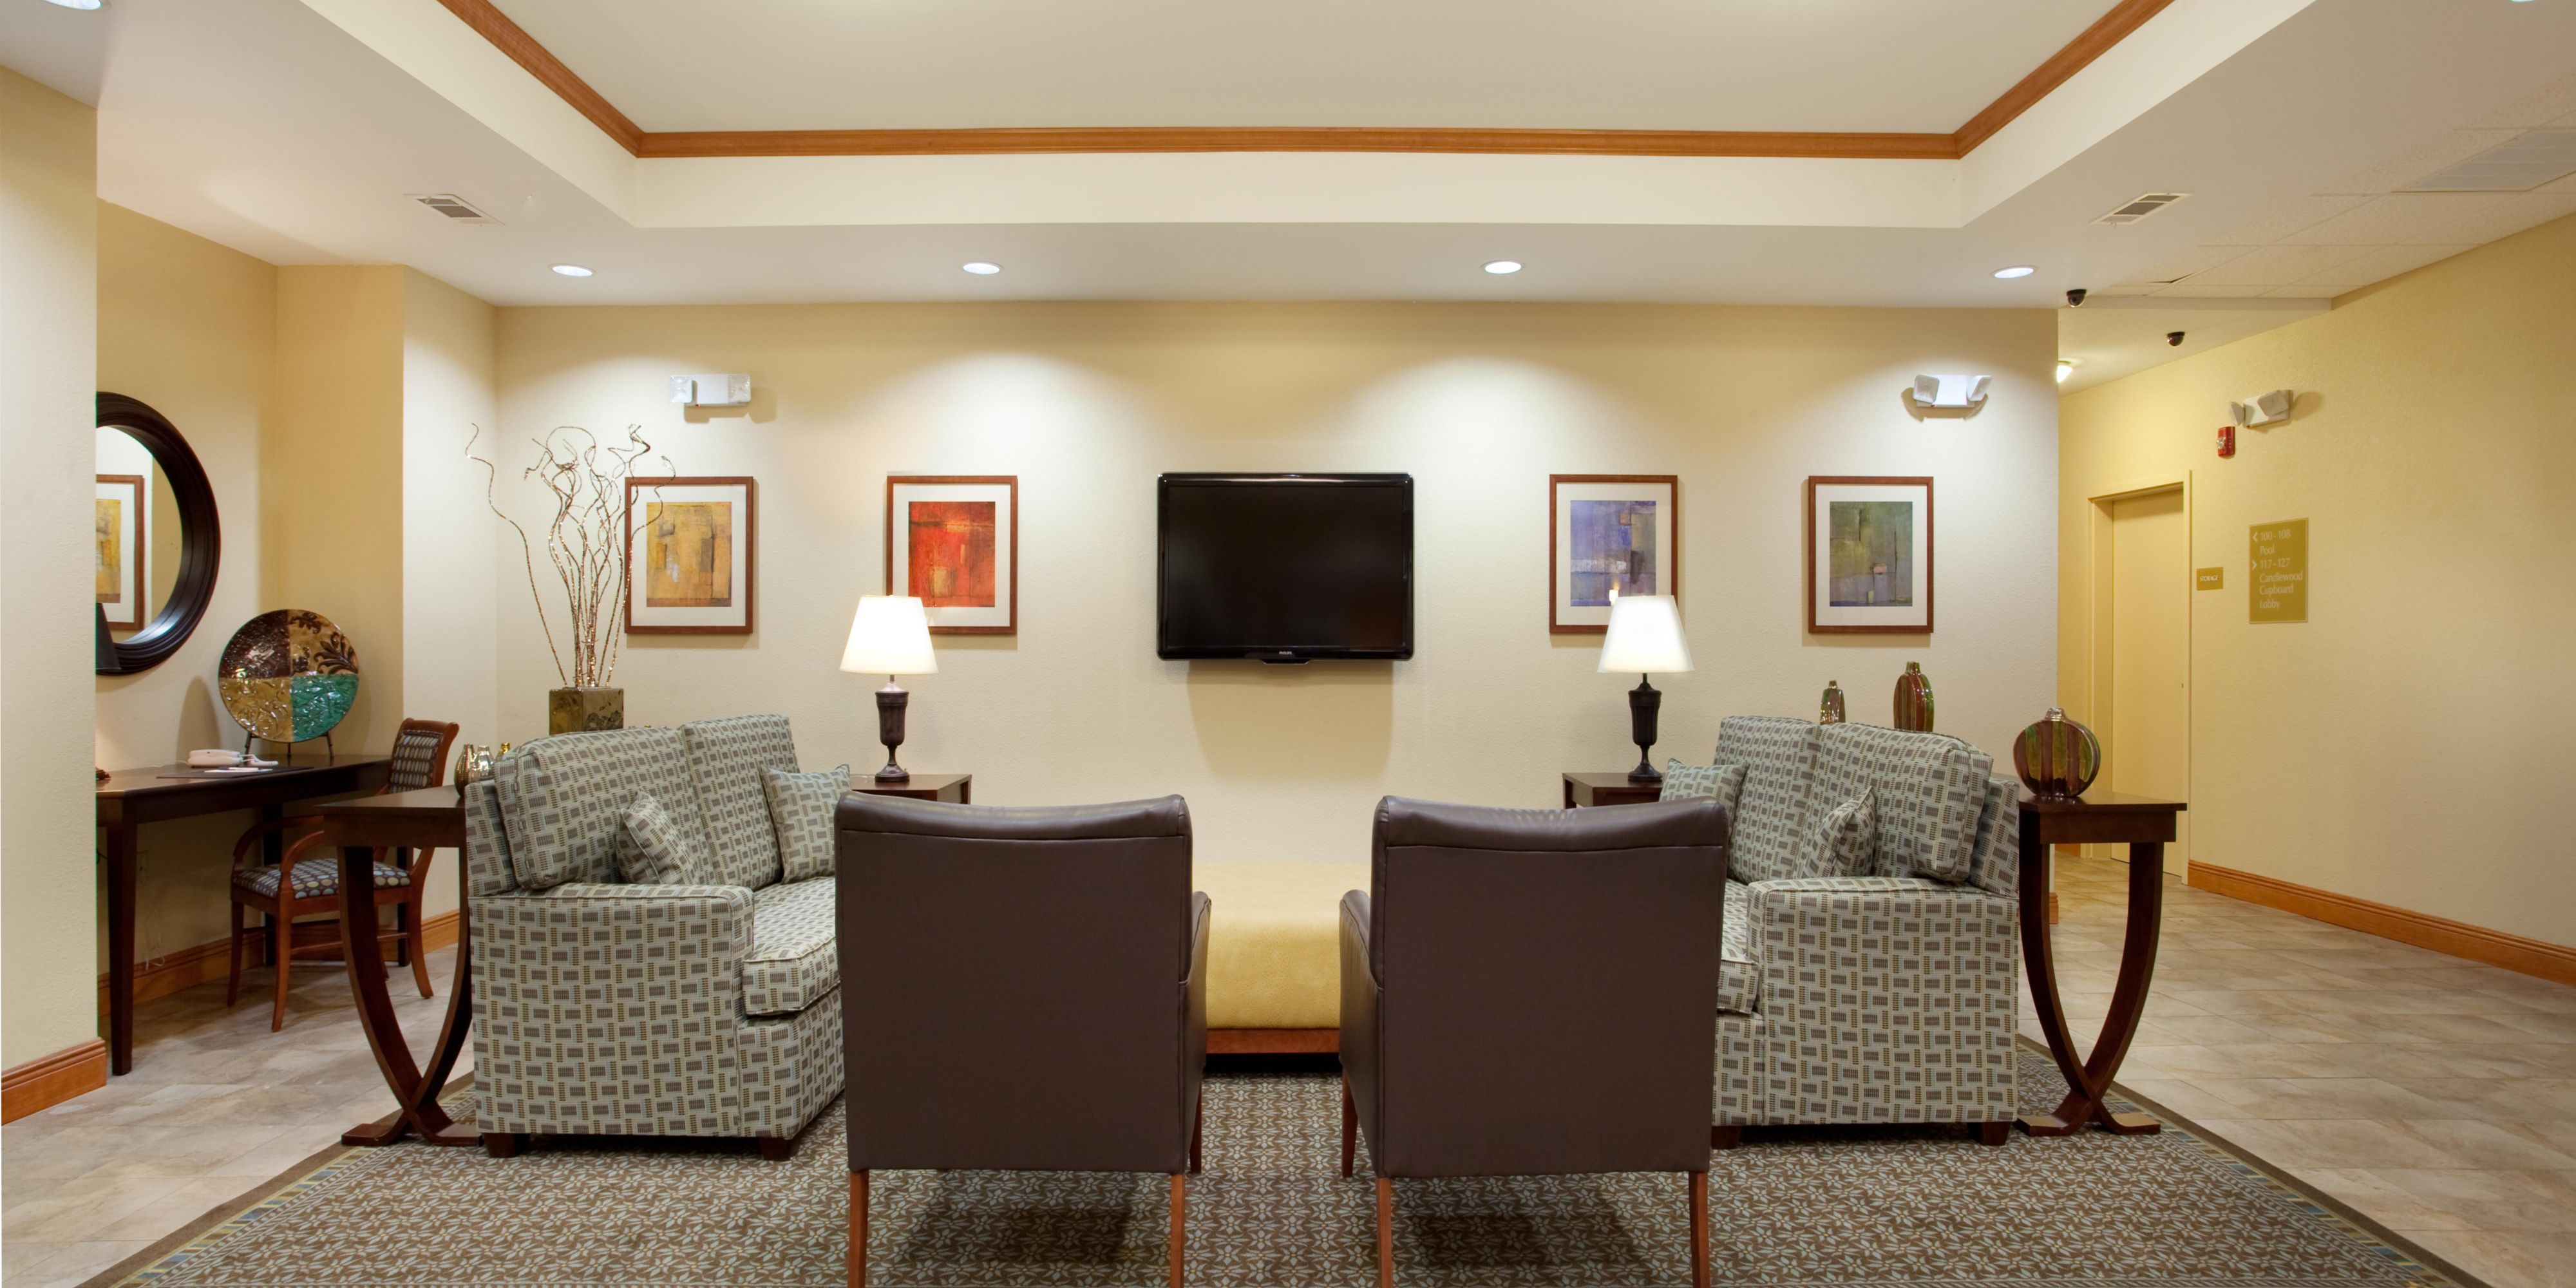 Slidell Hotels: Candlewood Suites Slidell Northshore   Extended Stay Hotel  In Slidell, Louisiana